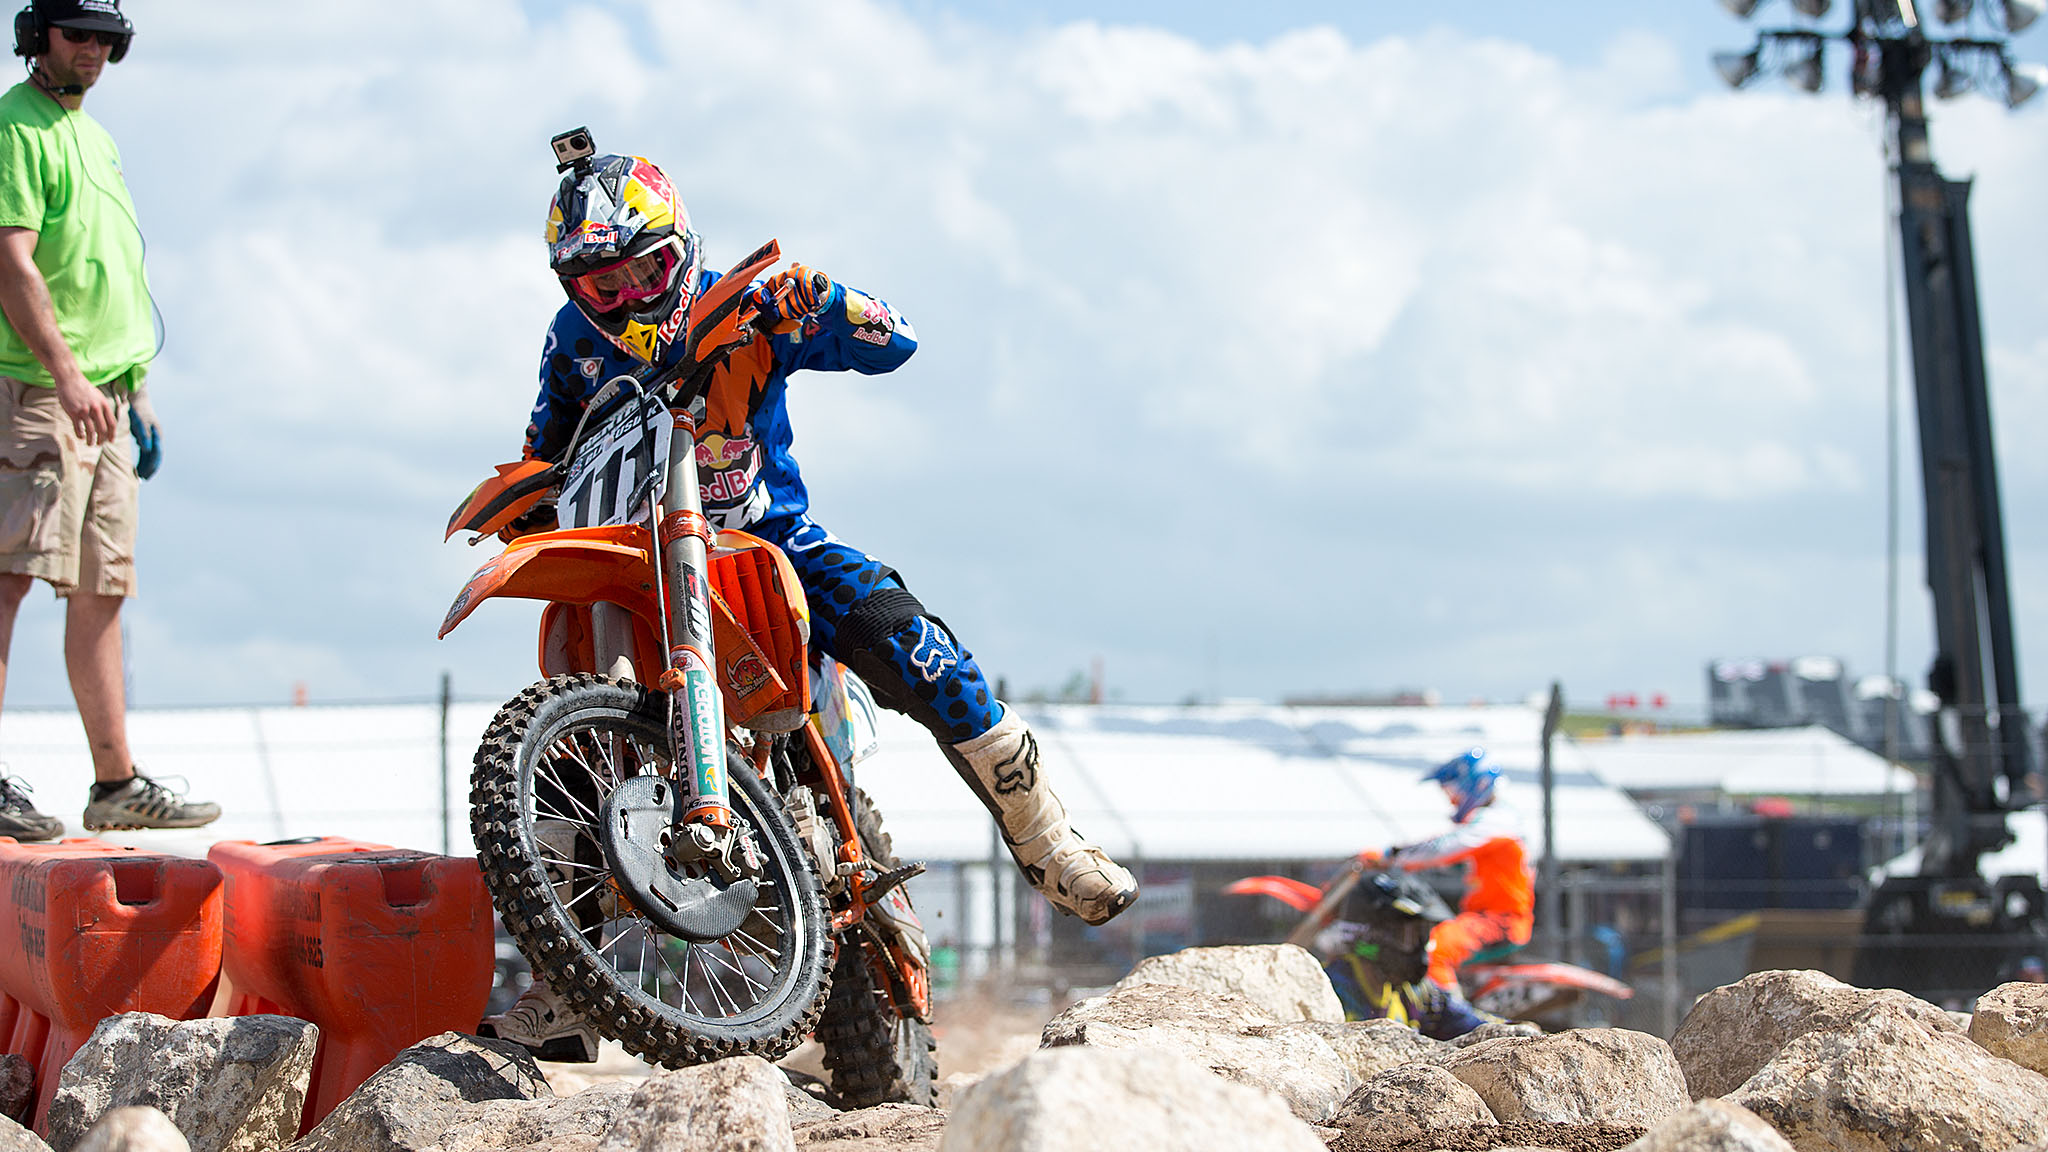 On his way to a fourth Enduro X gold medal, 31-year-old Taddy Blazusiak used a blistering run in the second heat of Round 1 to earn himself a place in the finals.